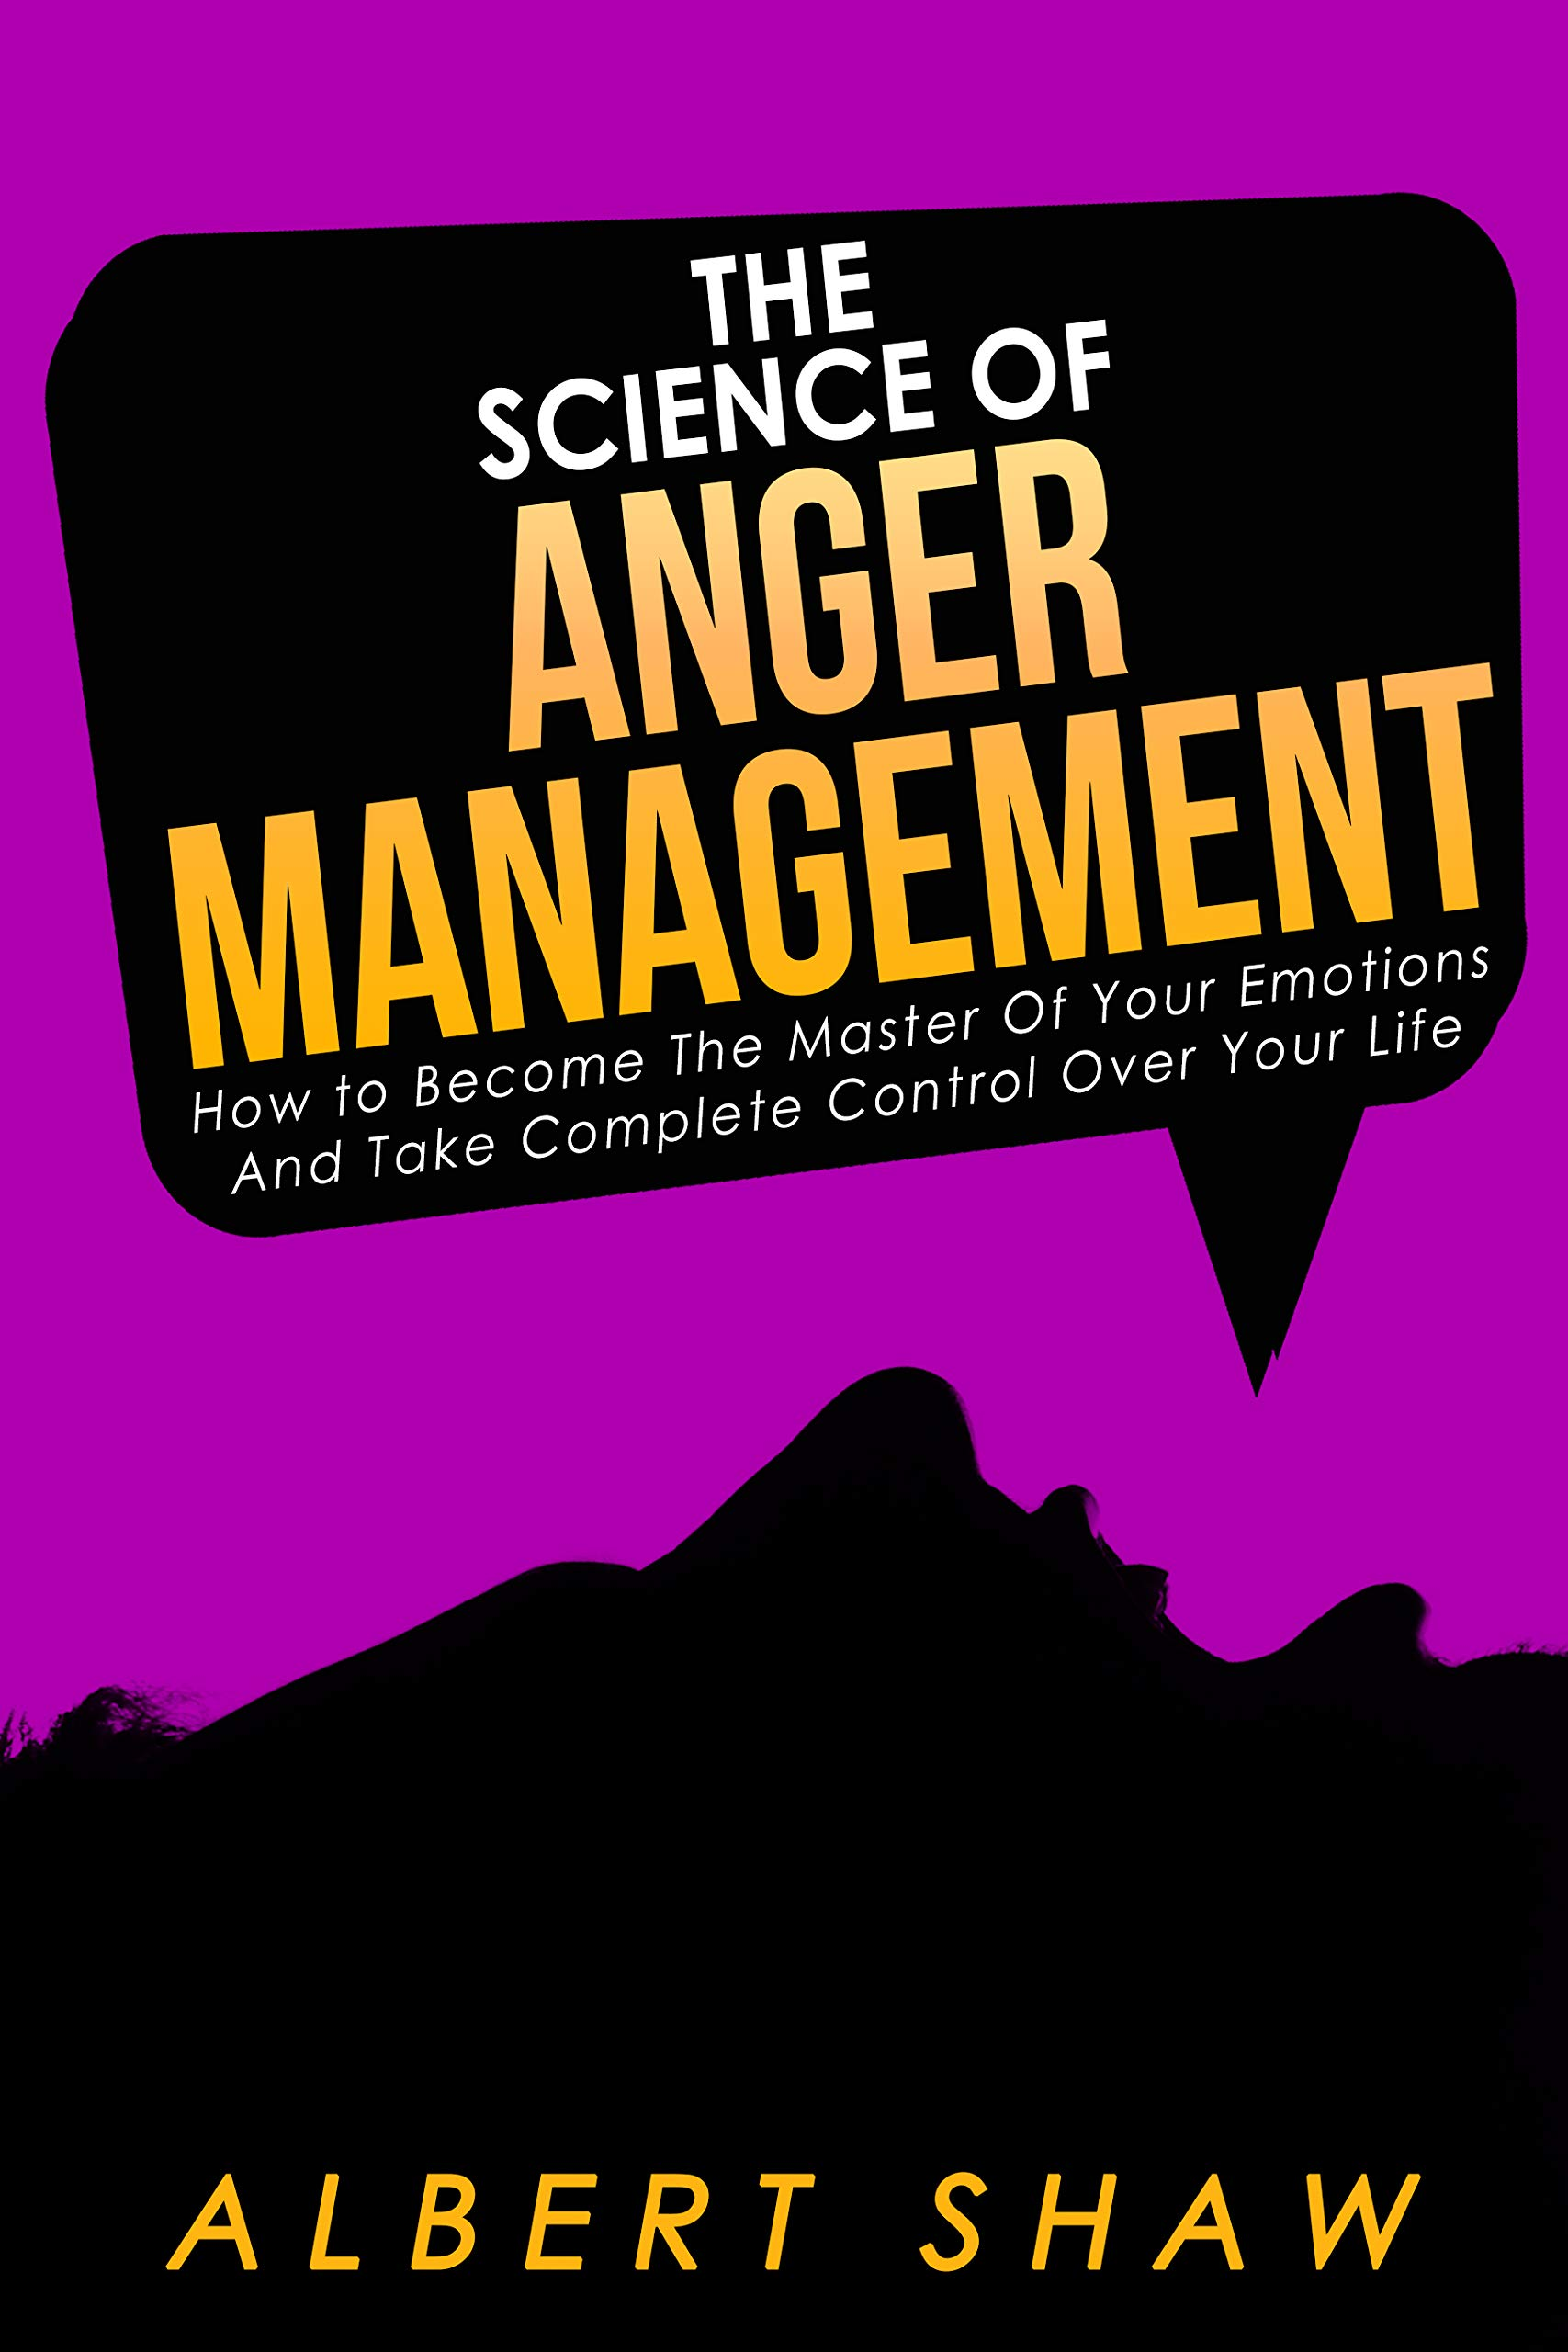 Image OfThe Science Of Anger Management: How To Become The Master Of Your Emotions And Take Complete Control Over Your Life